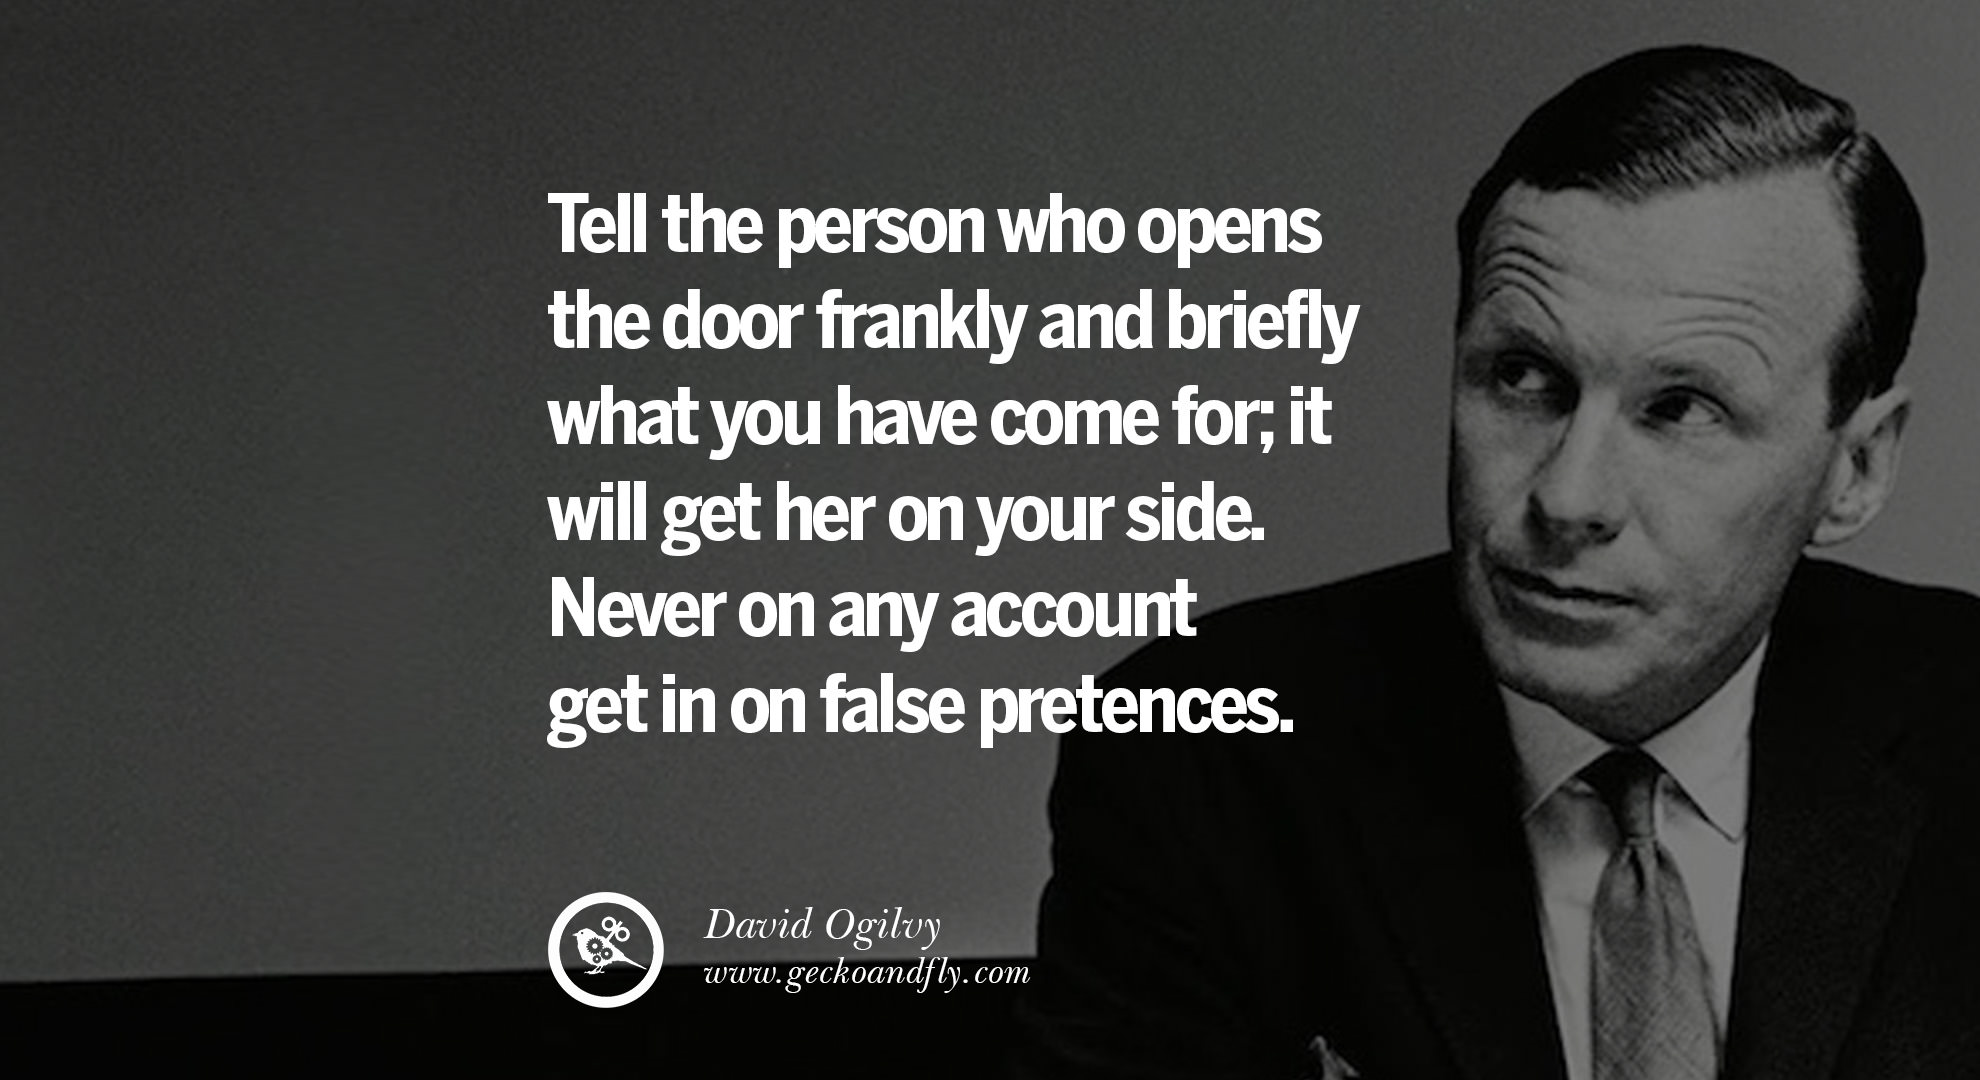 10 Tips From David Ogilvy On How To Be A Great Salesperson